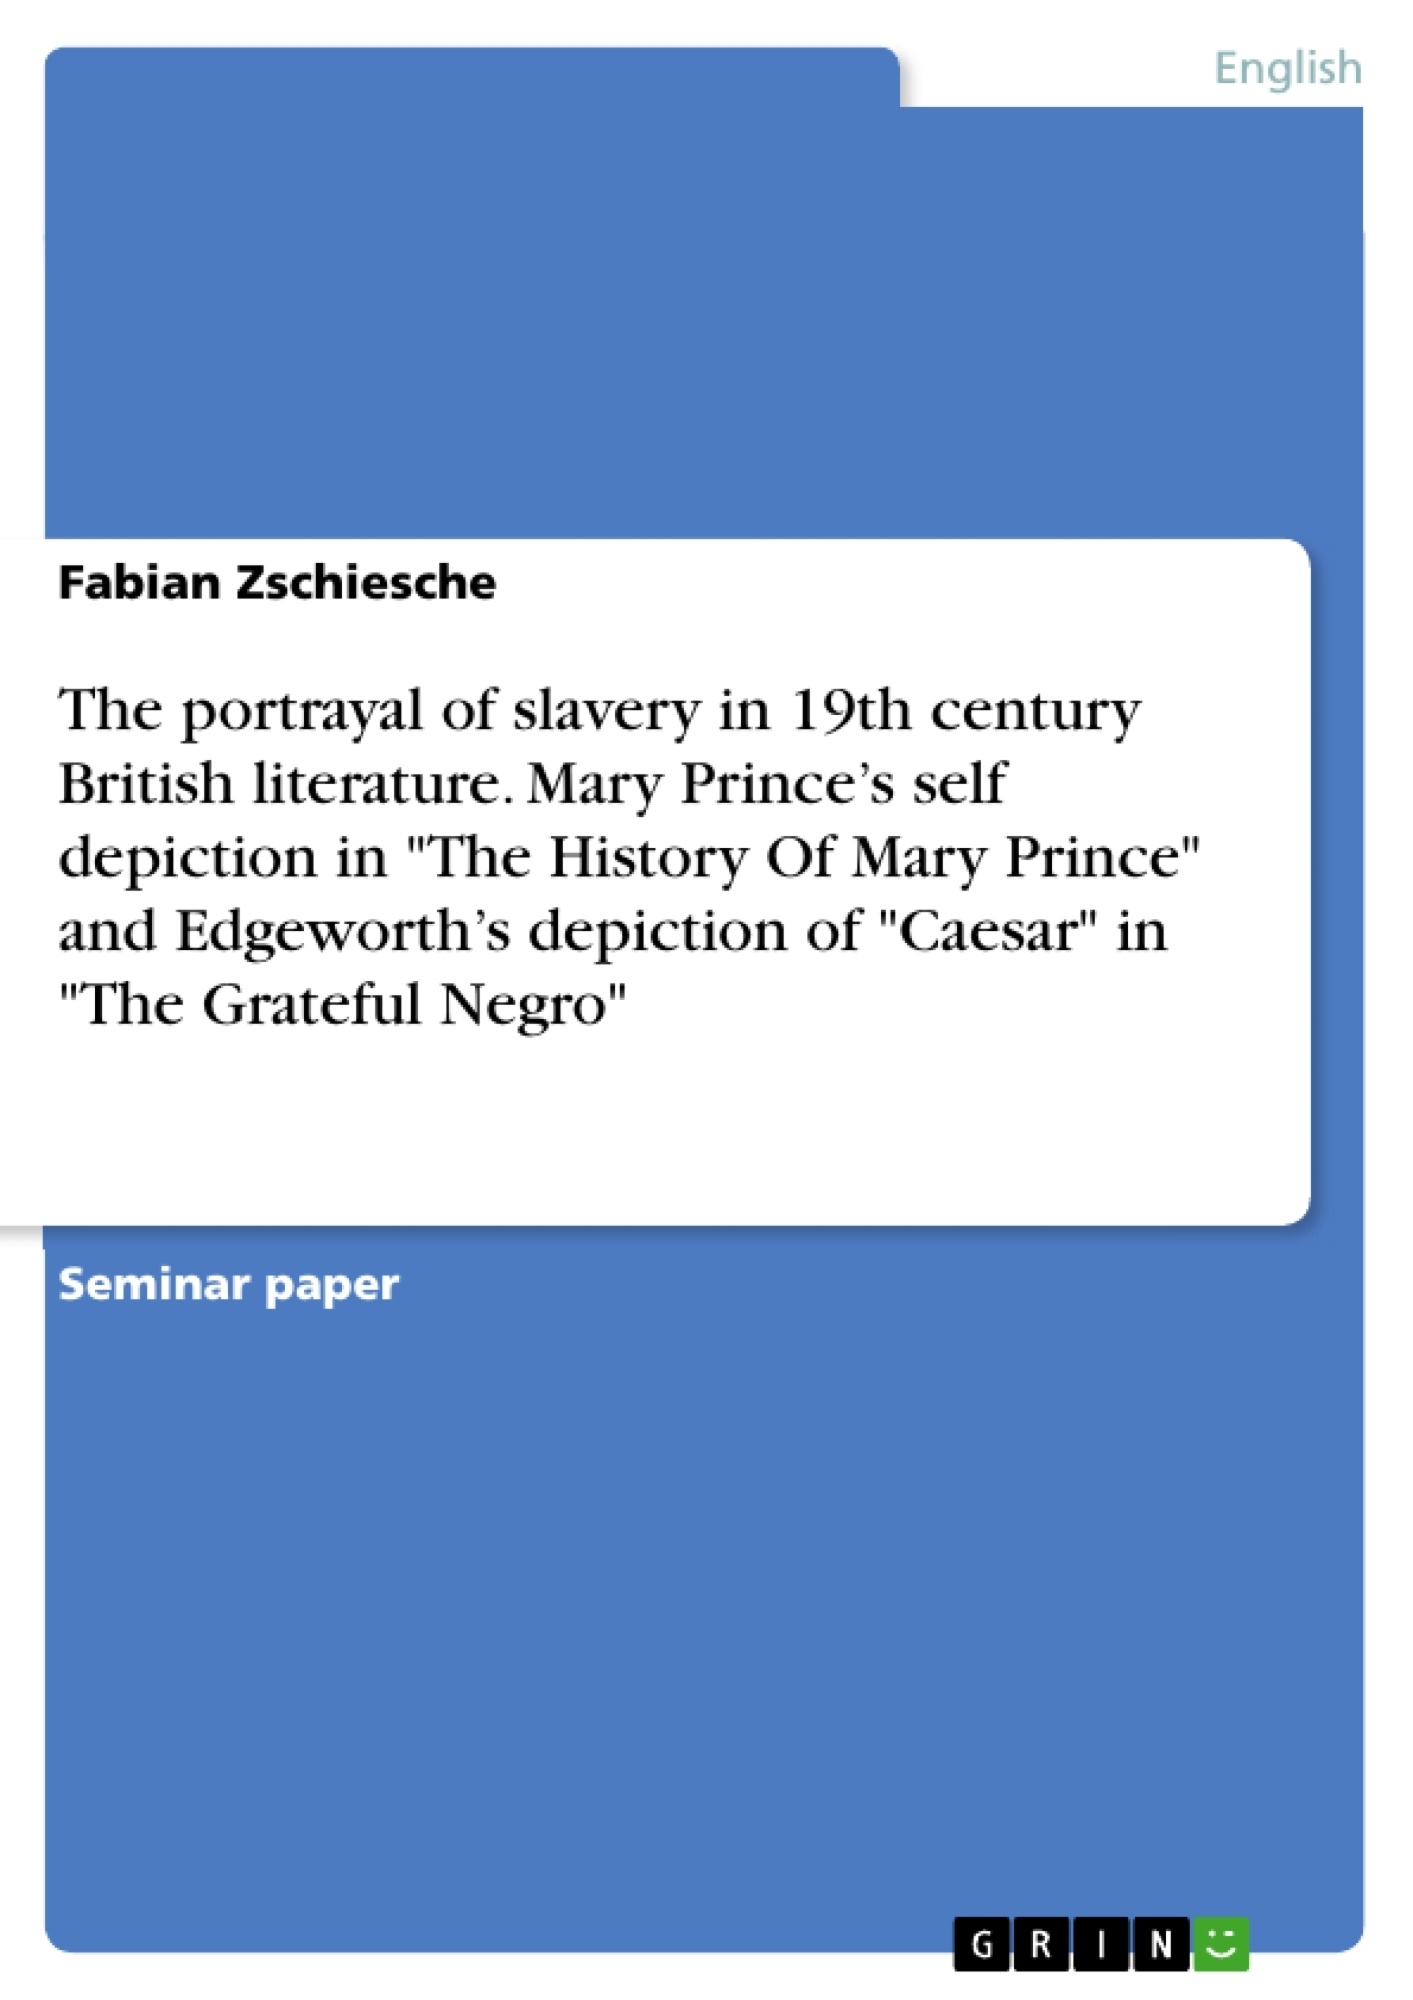 """Title: The portrayal of slavery in 19th century British literature. Mary Prince's self depiction in """"The History Of Mary Prince"""" and Edgeworth's depiction of """"Caesar"""" in """"The Grateful Negro"""""""